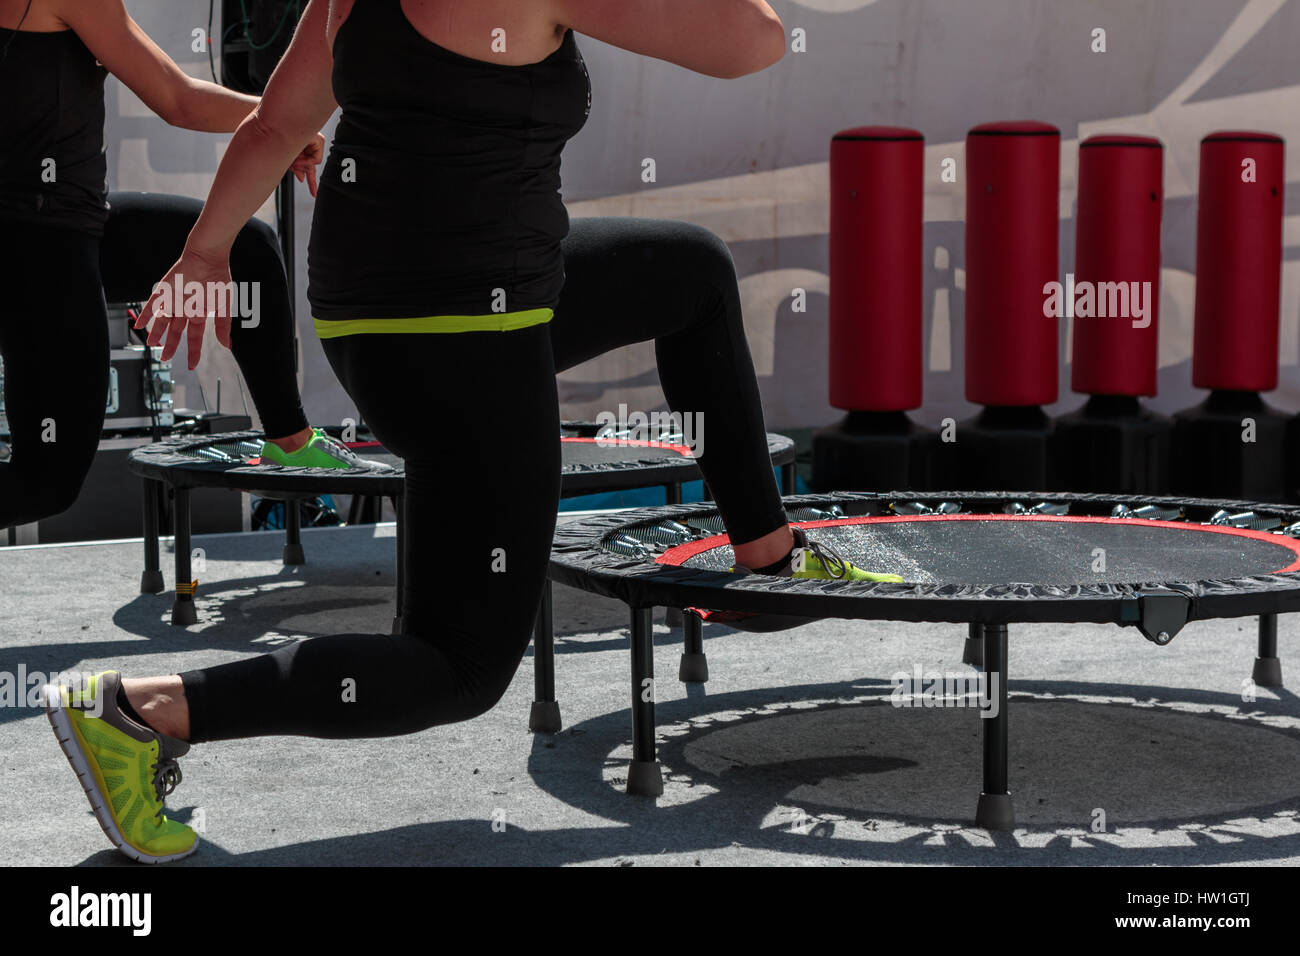 b3af5cf7fee3f Mini Trampoline Workout  Girl doing Fitness Exercise in Class at Gym ...